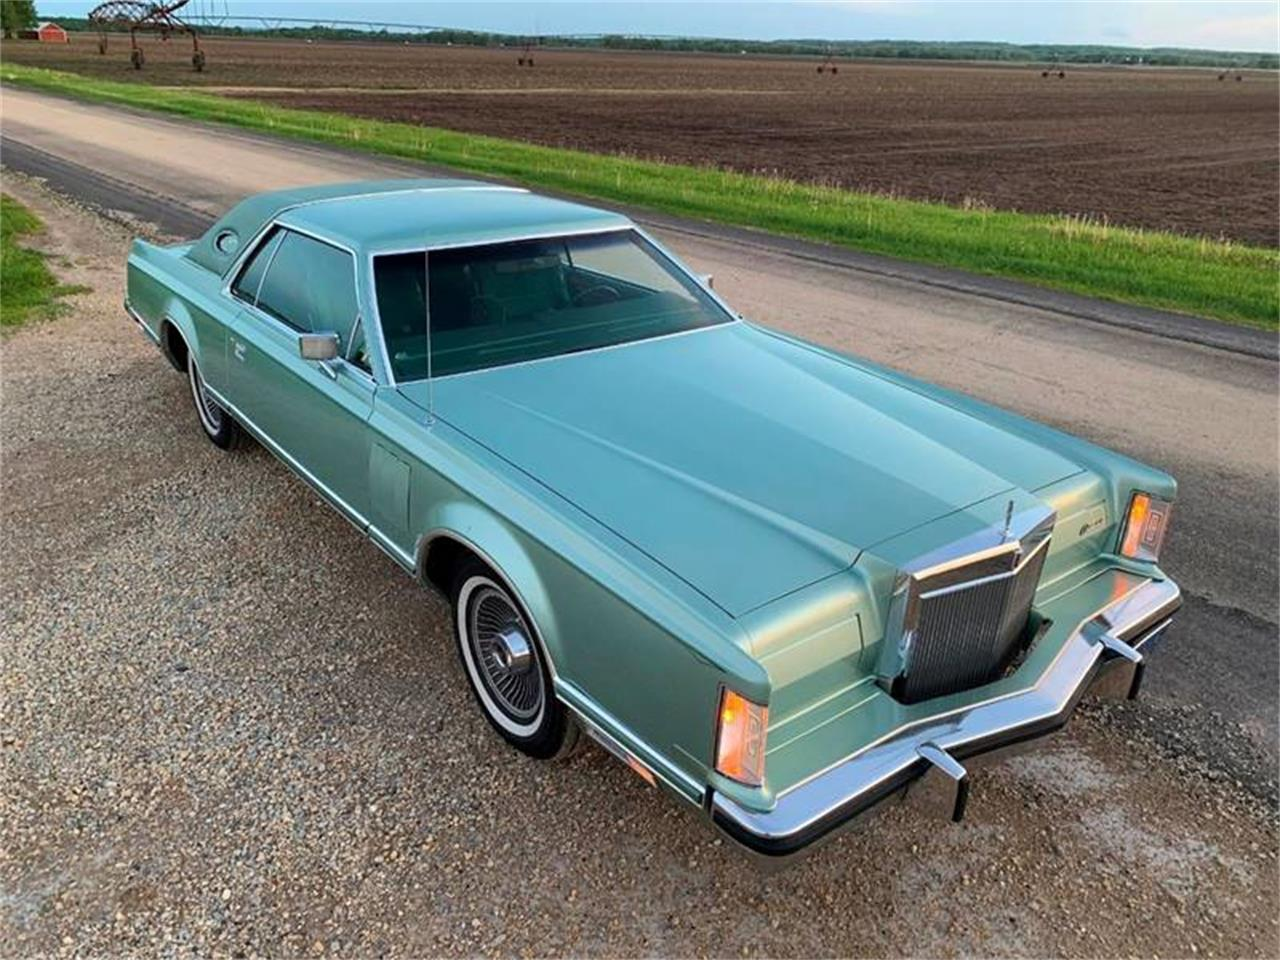 Large Picture of 1978 Lincoln Continental located in Carey Illinois - $15,000.00 Offered by Park-Ward Motors - QGWL